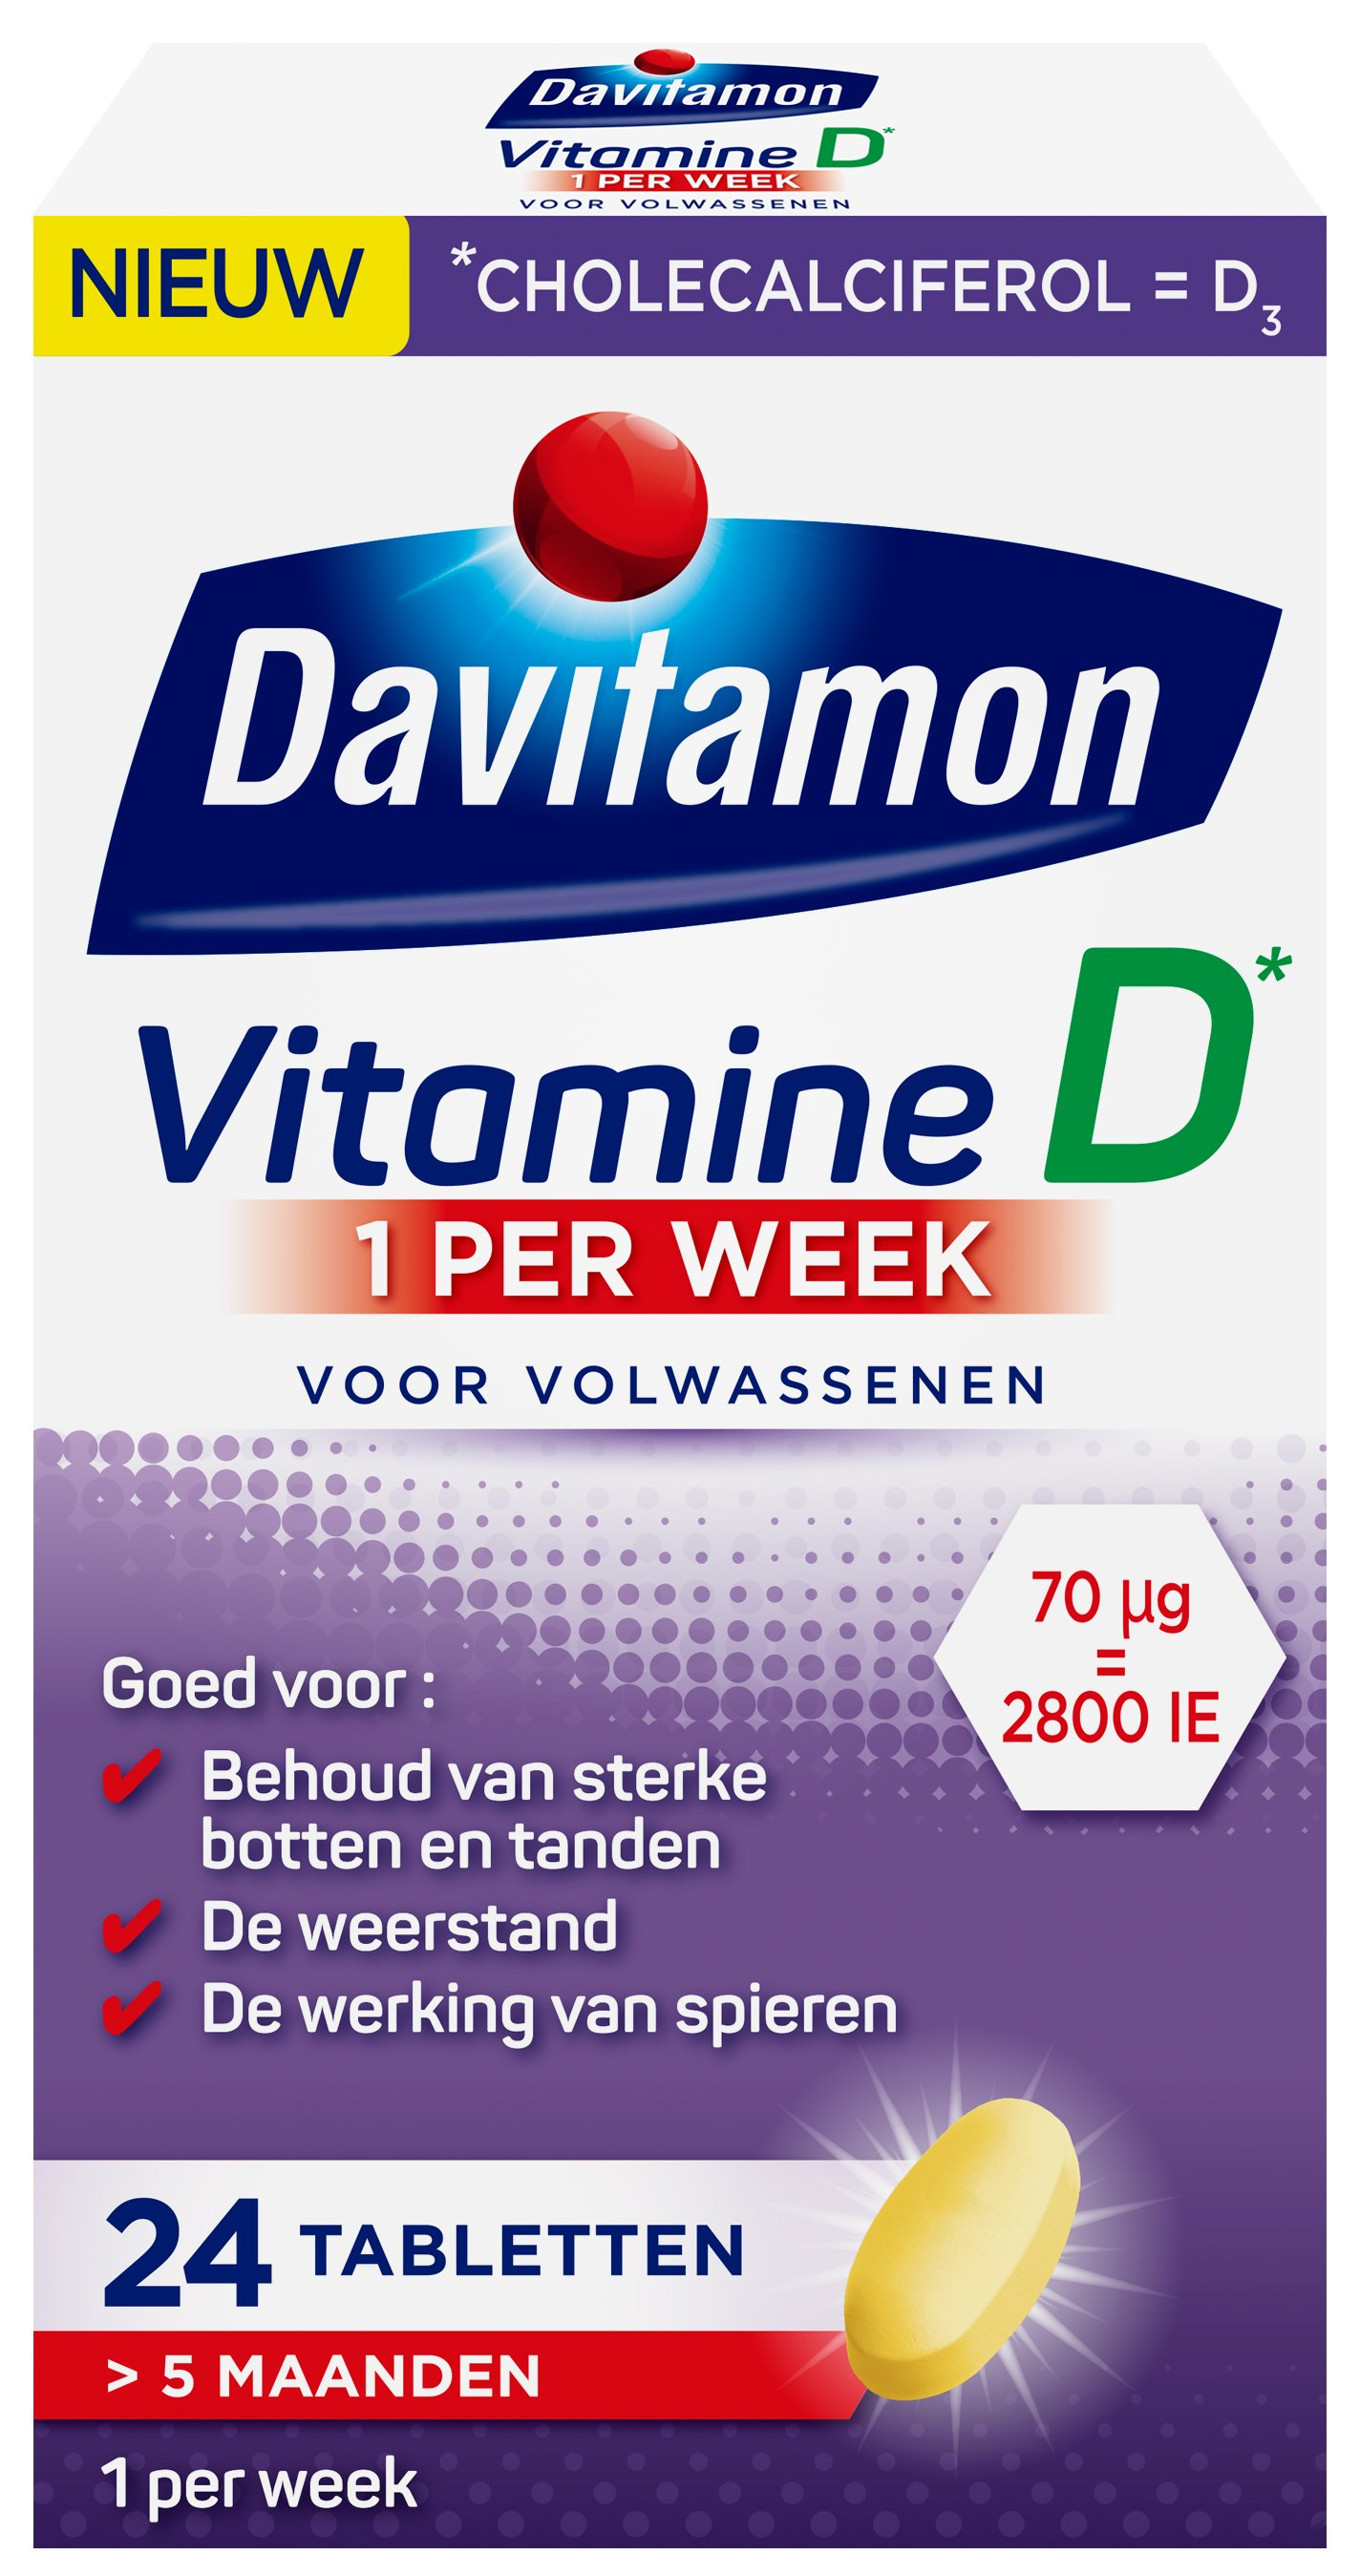 Davitamon Vitamine D week tabletten verpakking 3d